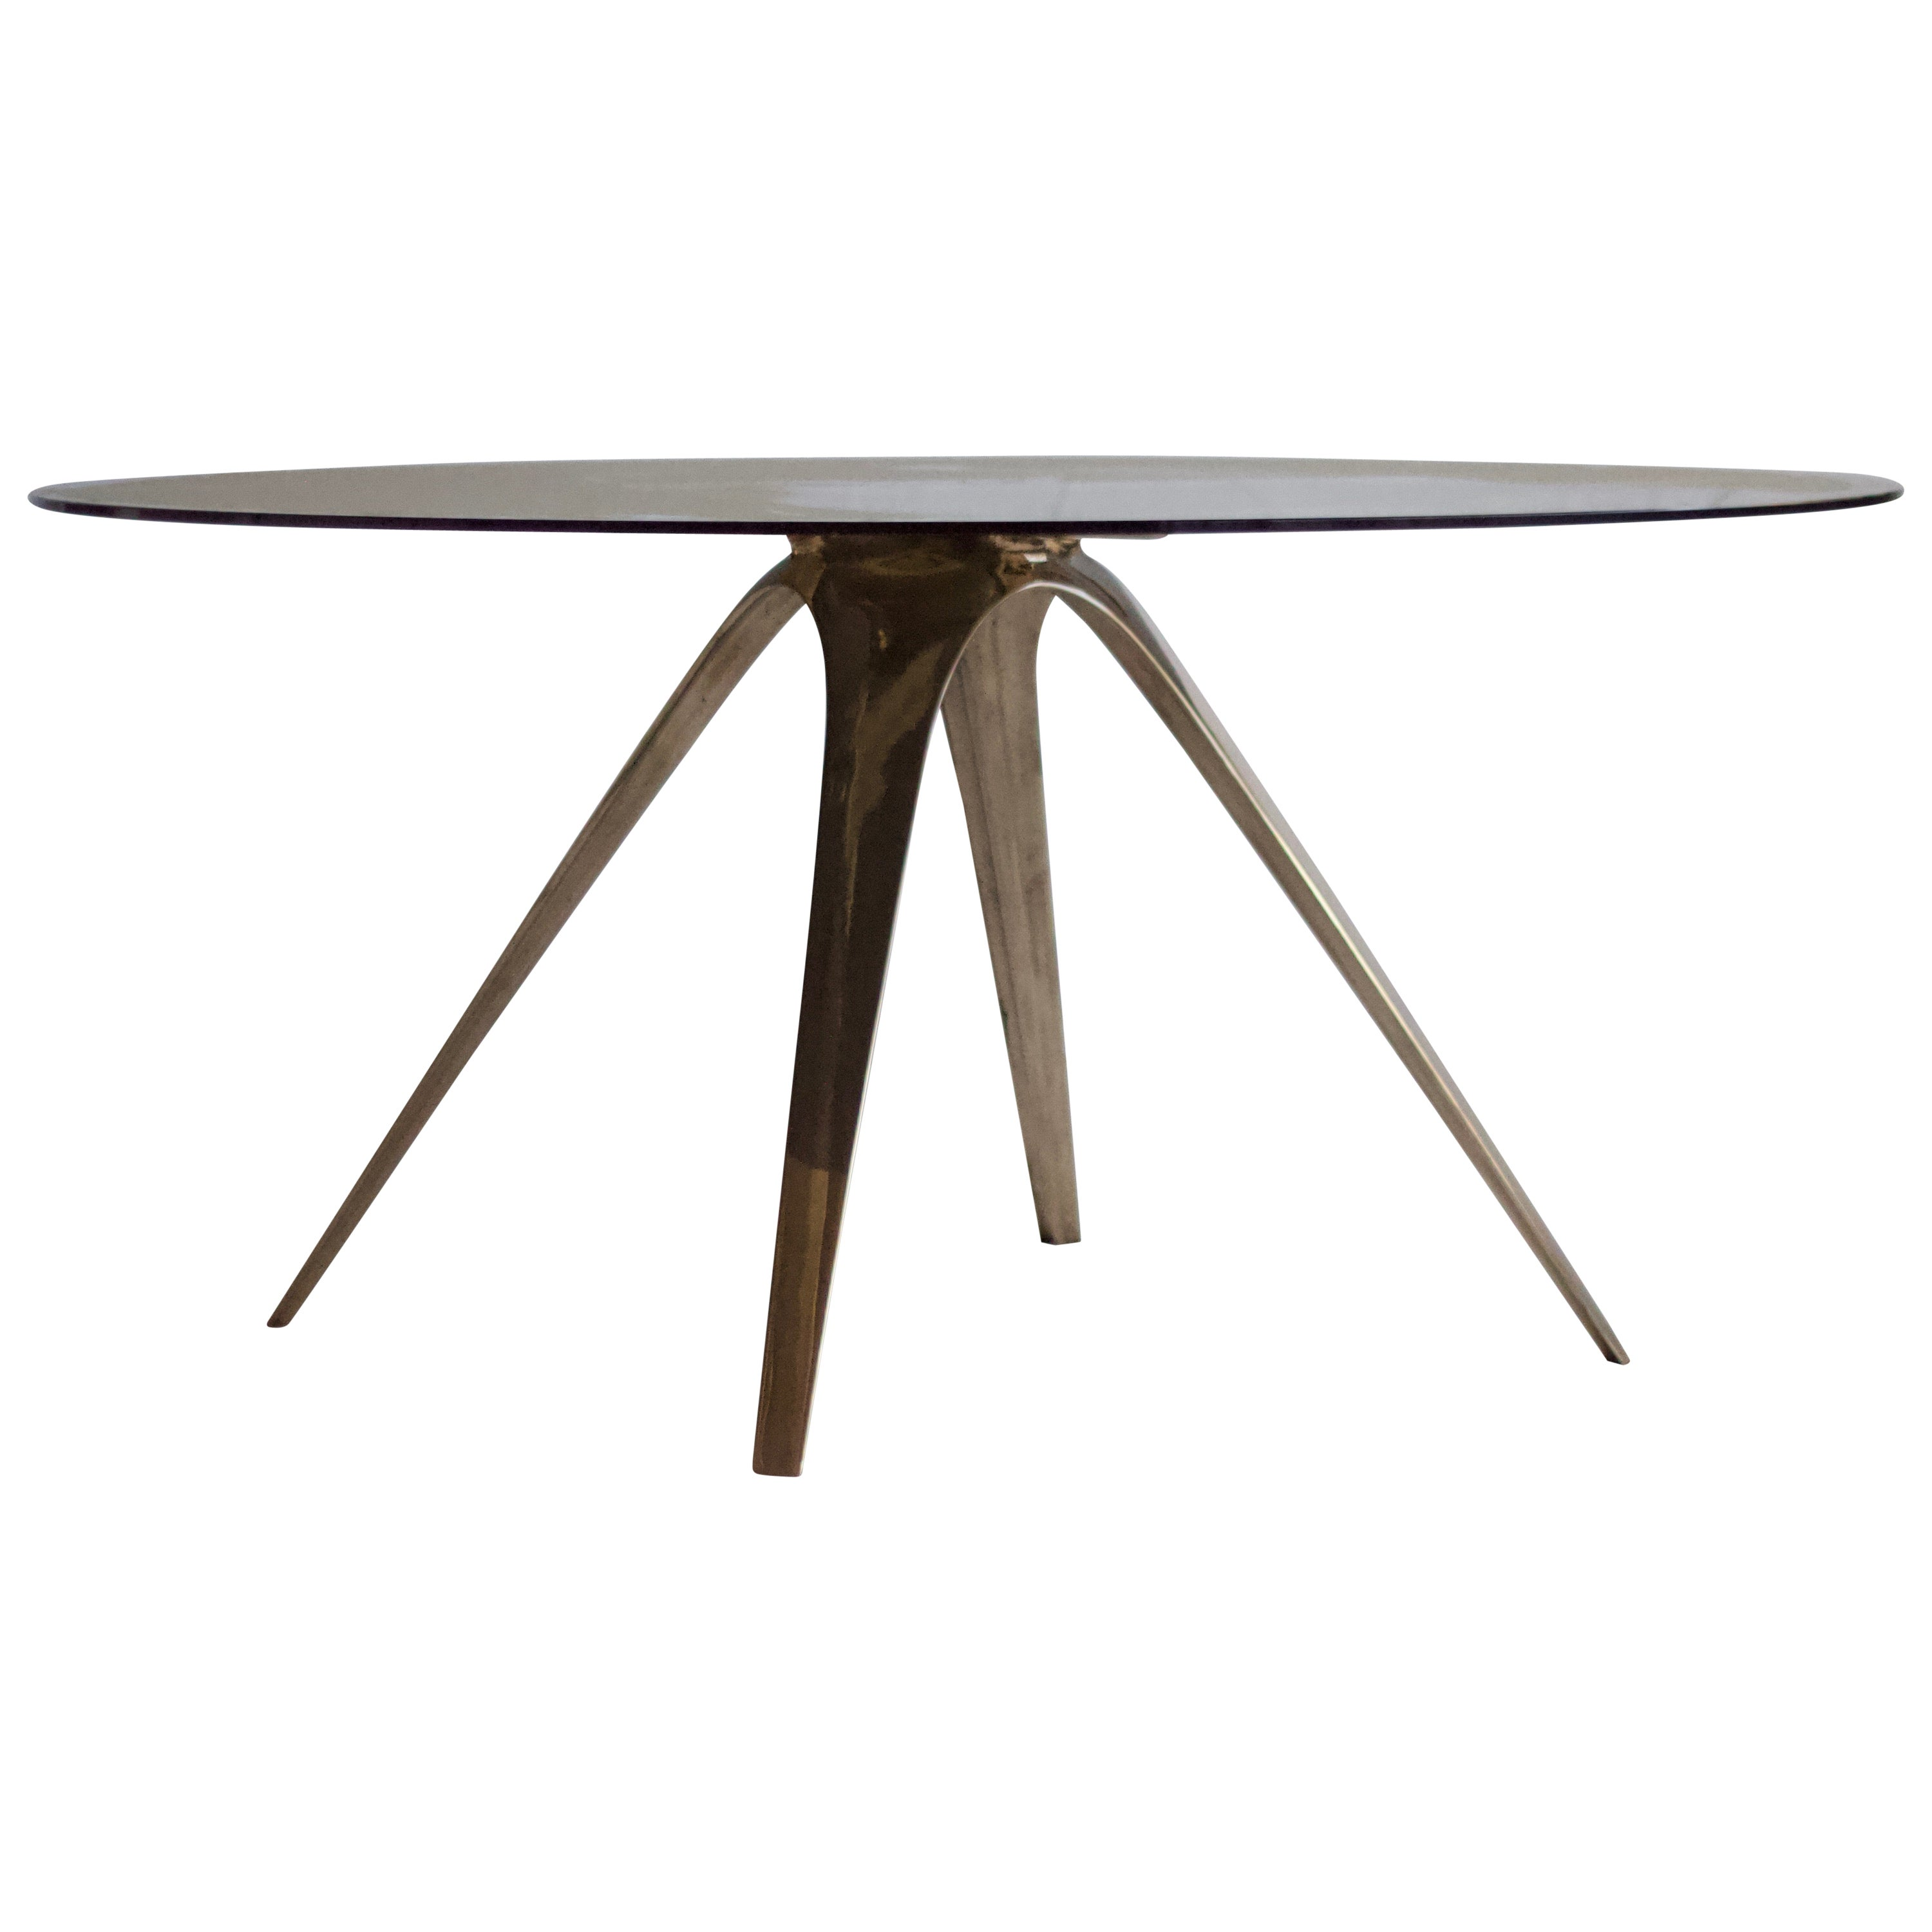 Barbera Spargere Round Table, Modern Solid Bronze Base with Glass Top